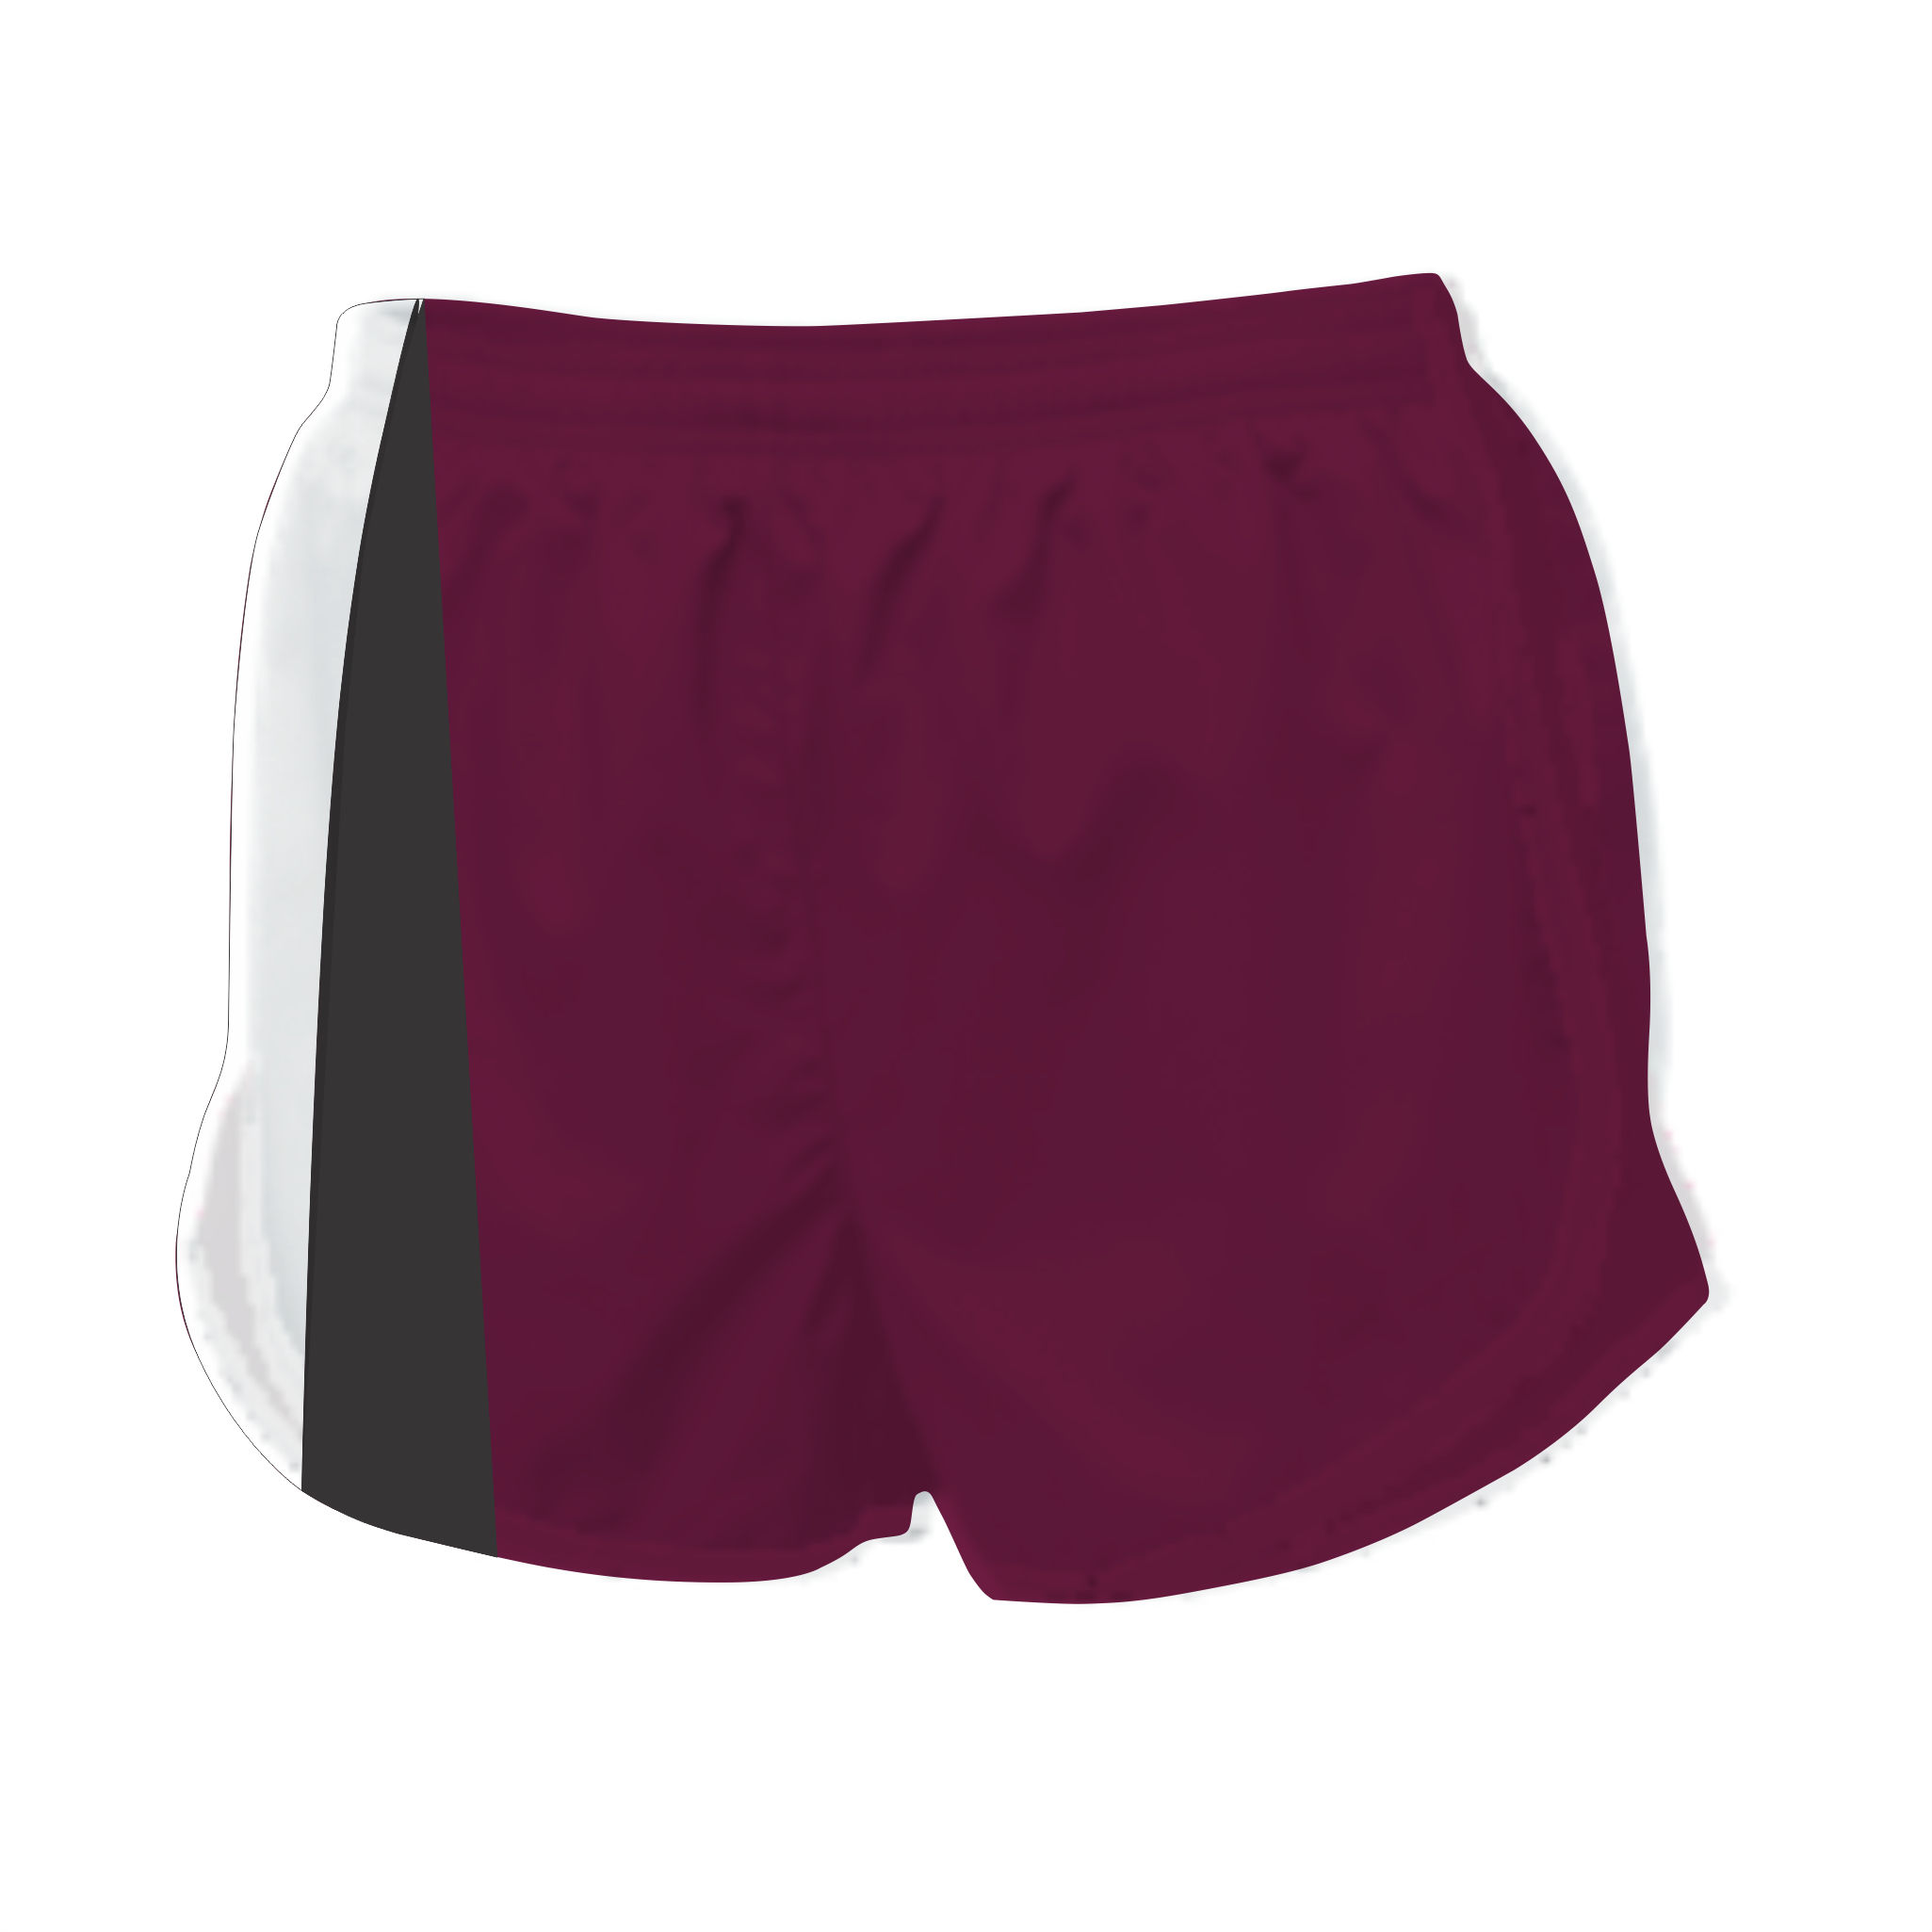 Panelled - Zuco running shorts - Petra